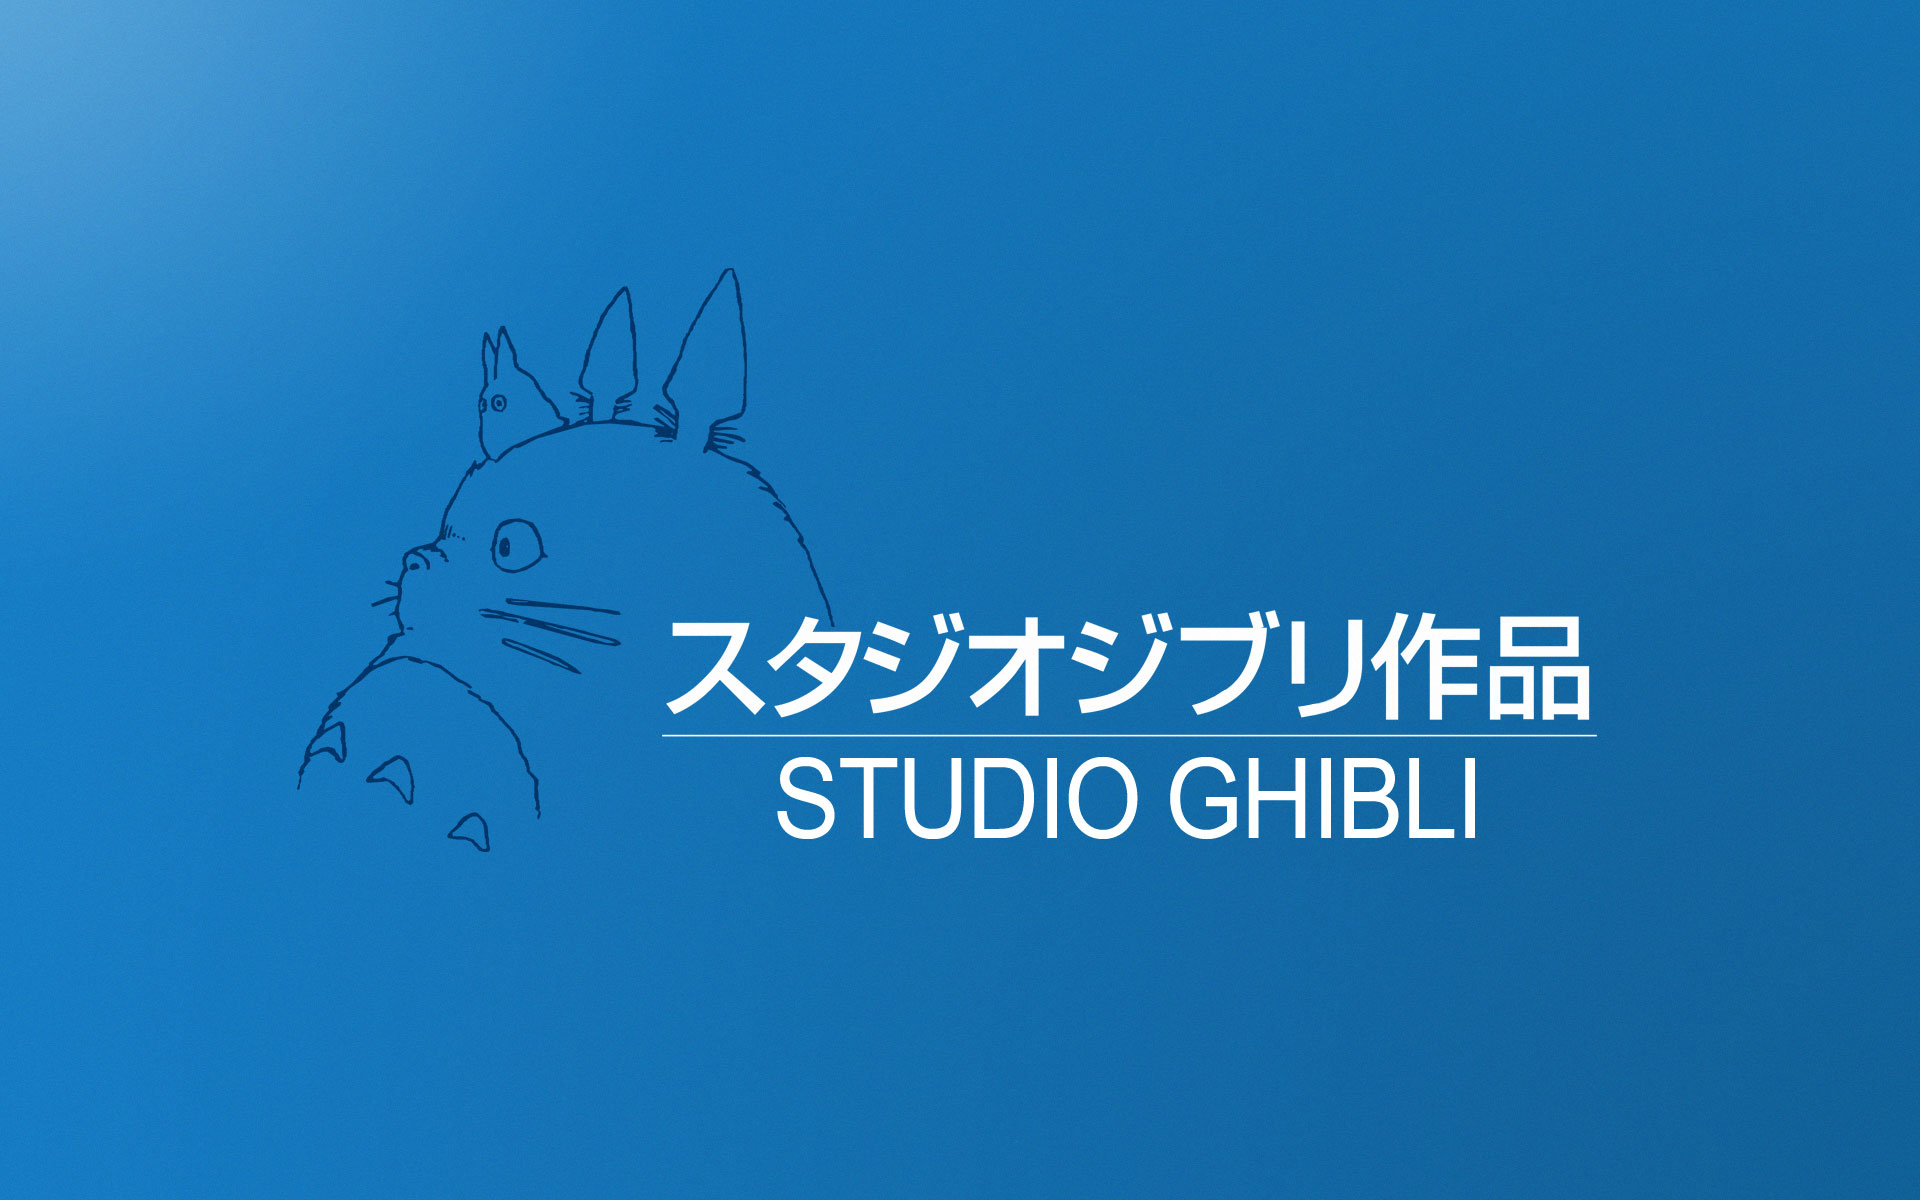 Studio Ghibli Coming To Netflix